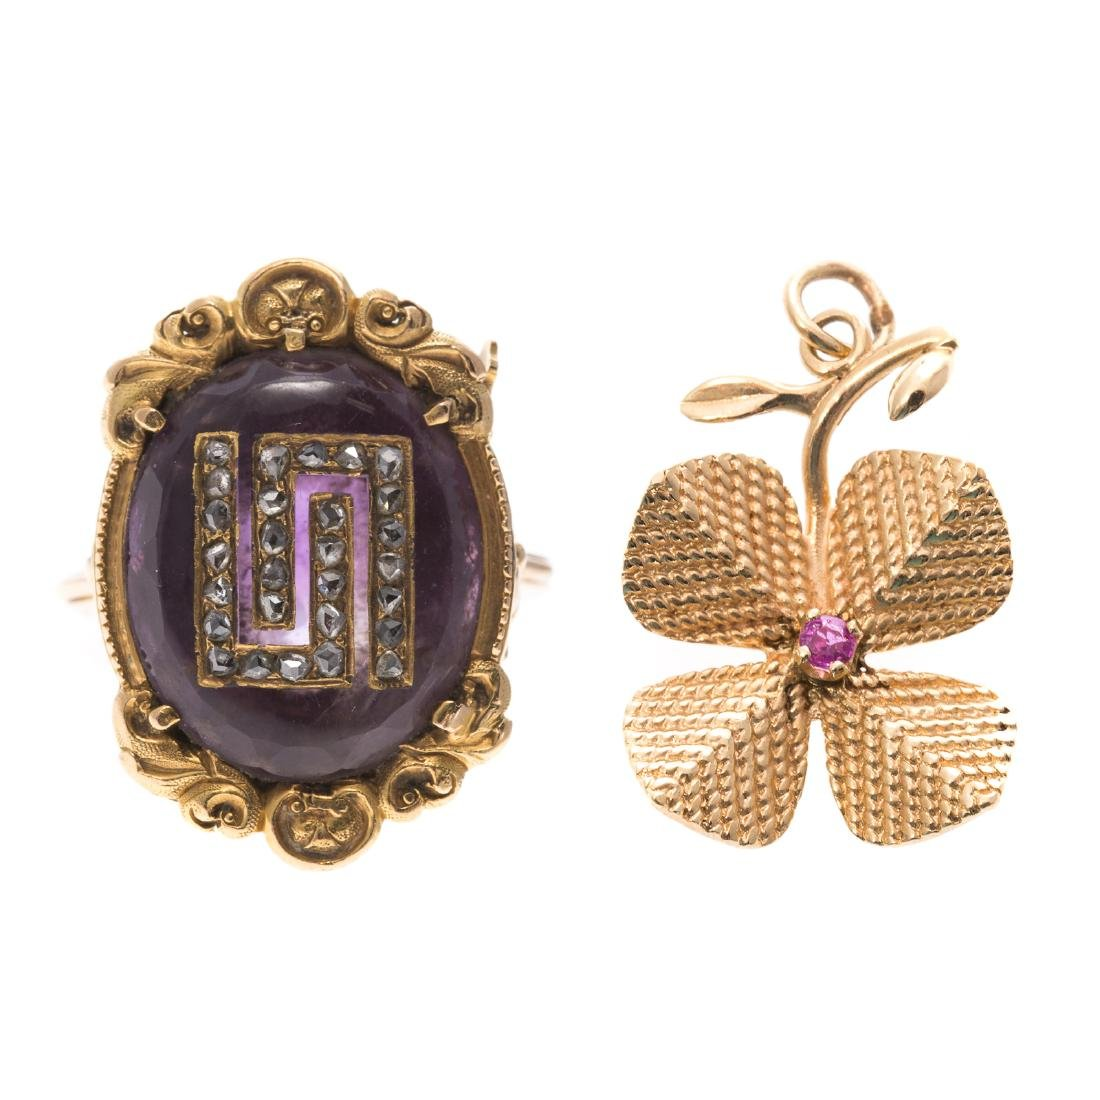 A Lady's Vintage Ring & Flower Charm in 14K